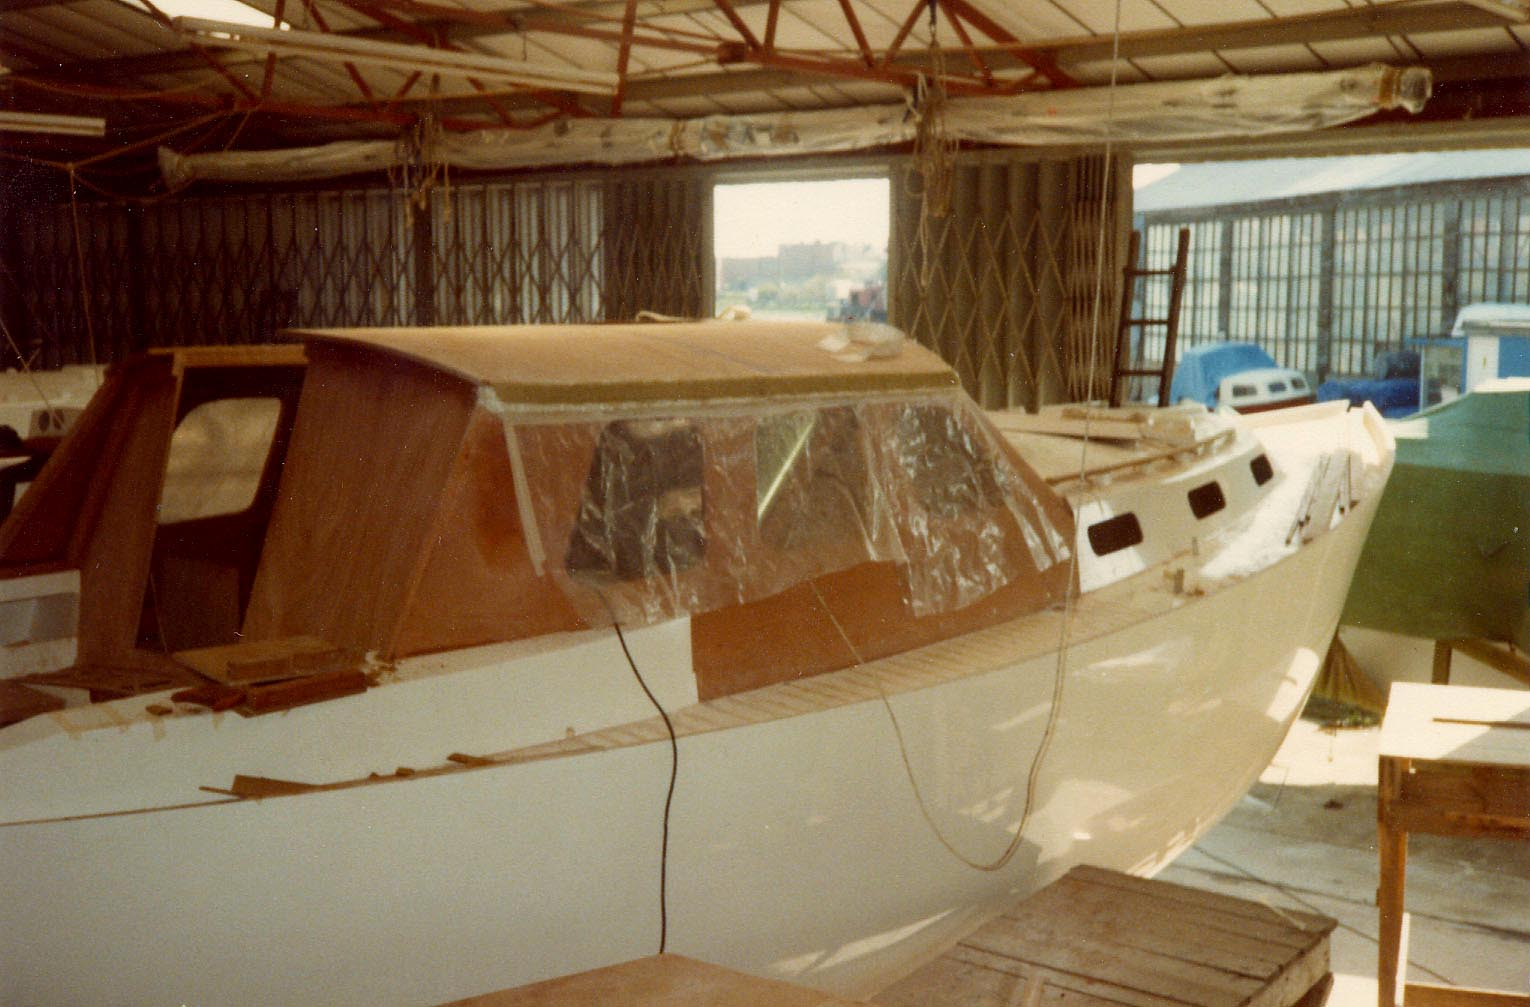 Hoodwink - the first V32 Pilot under construction